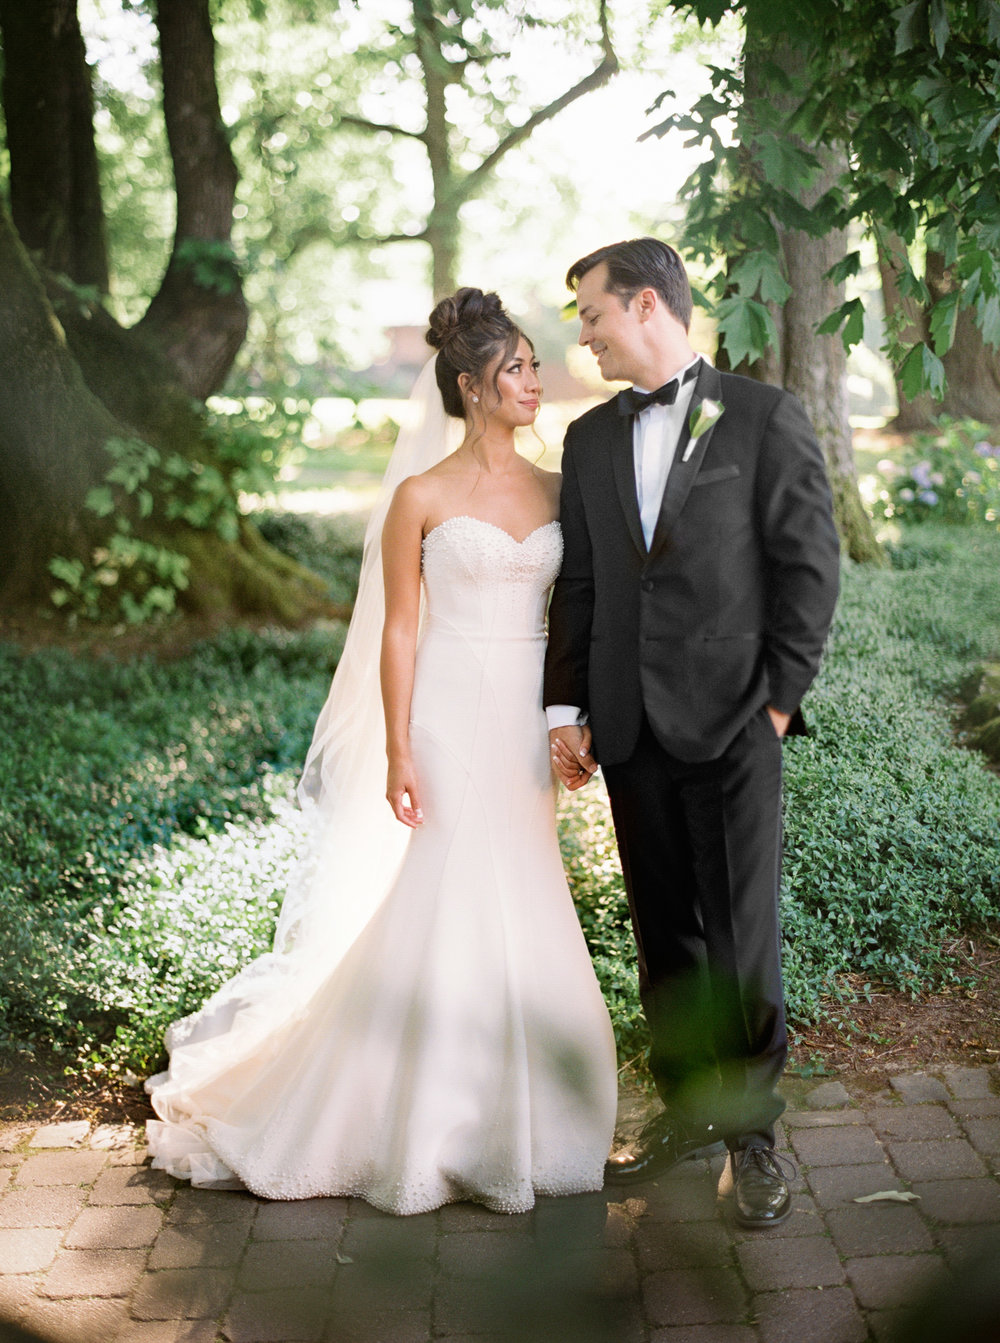 098OutliveCreative_Travel_Photographer_Videographer_Lewis&Clark_Oregon_Elegant_BlackTie_Destination_Wedding.jpg